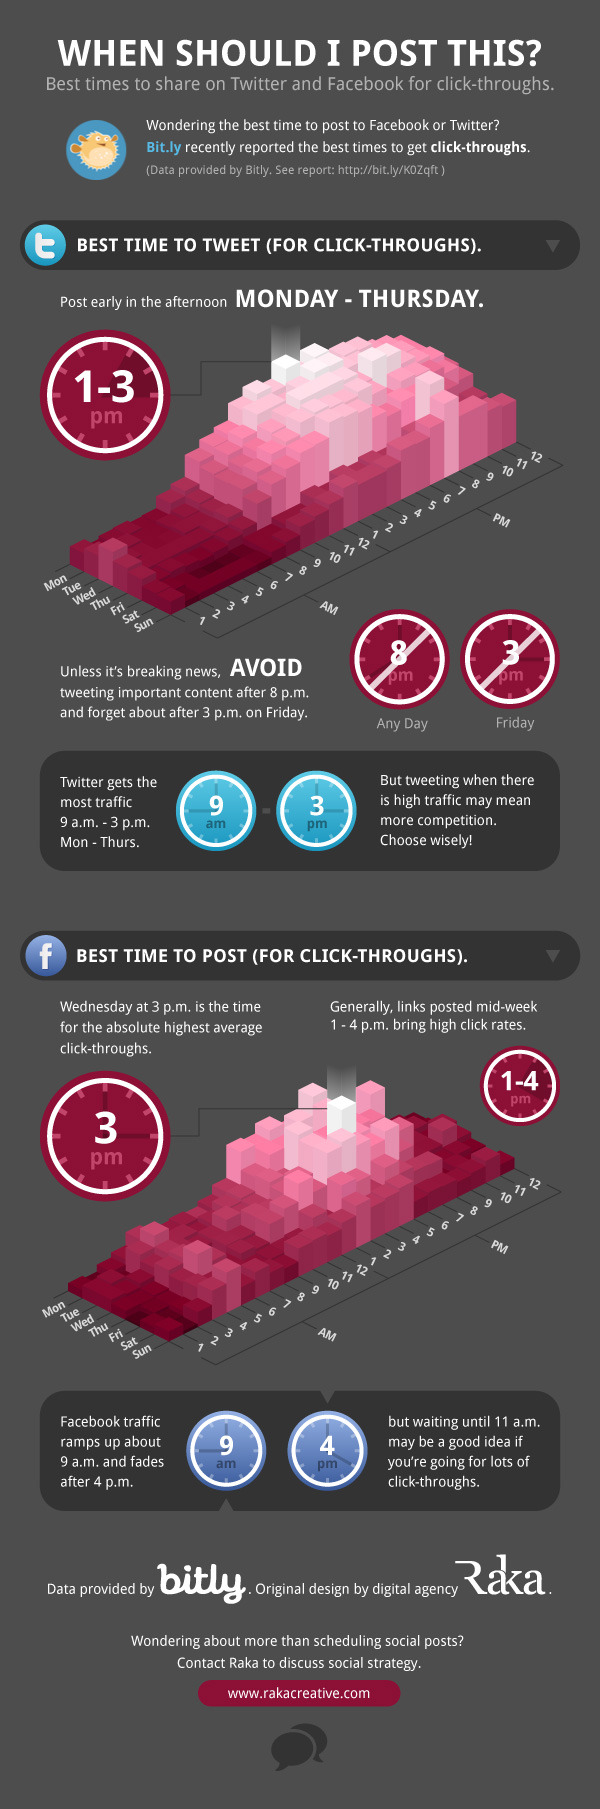 Best Times to Tweet or Post on Facebook